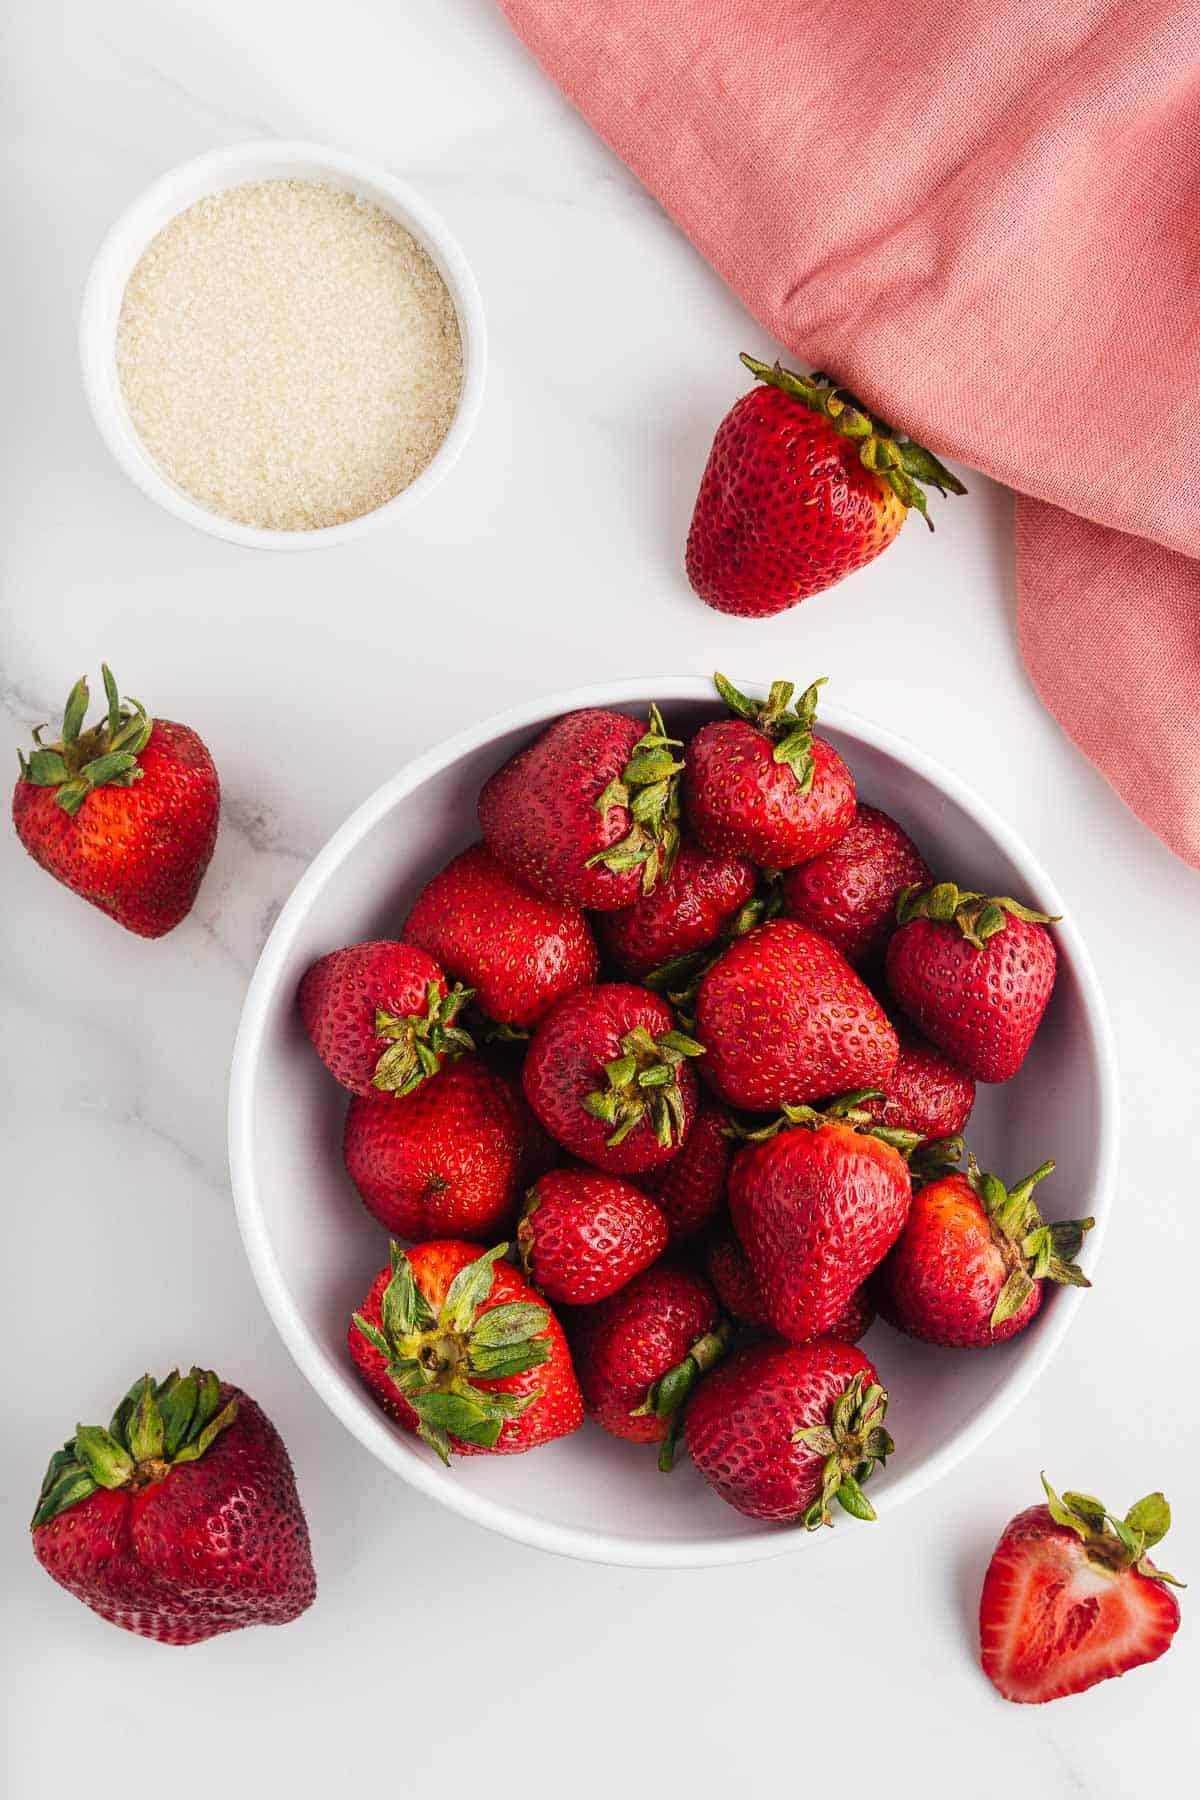 Cane Sugar and Strawberries in a Bowl